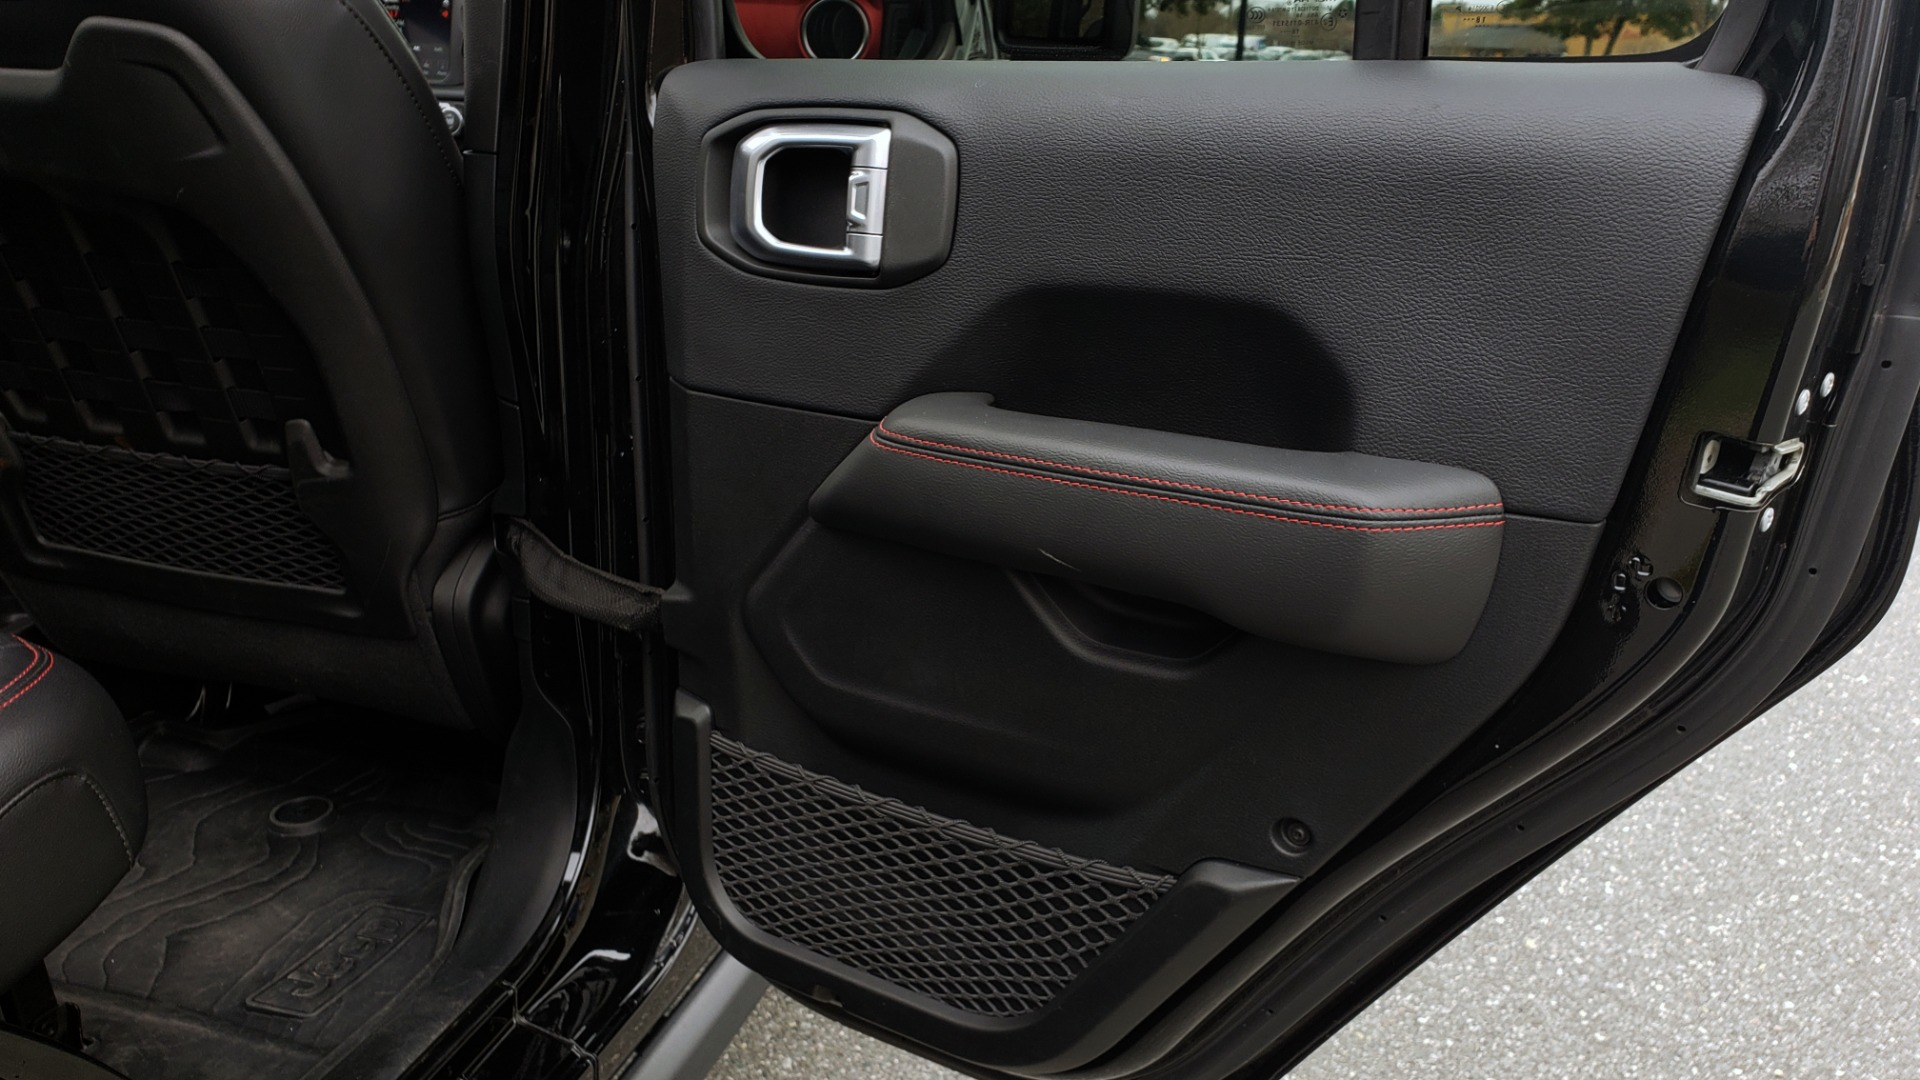 Used 2019 Jeep WRANGLER UNLIMITED RUBICON 4WD / V6 / 8-SPD AUTO / NAV / PWR TOP / REARVIEW for sale Sold at Formula Imports in Charlotte NC 28227 96